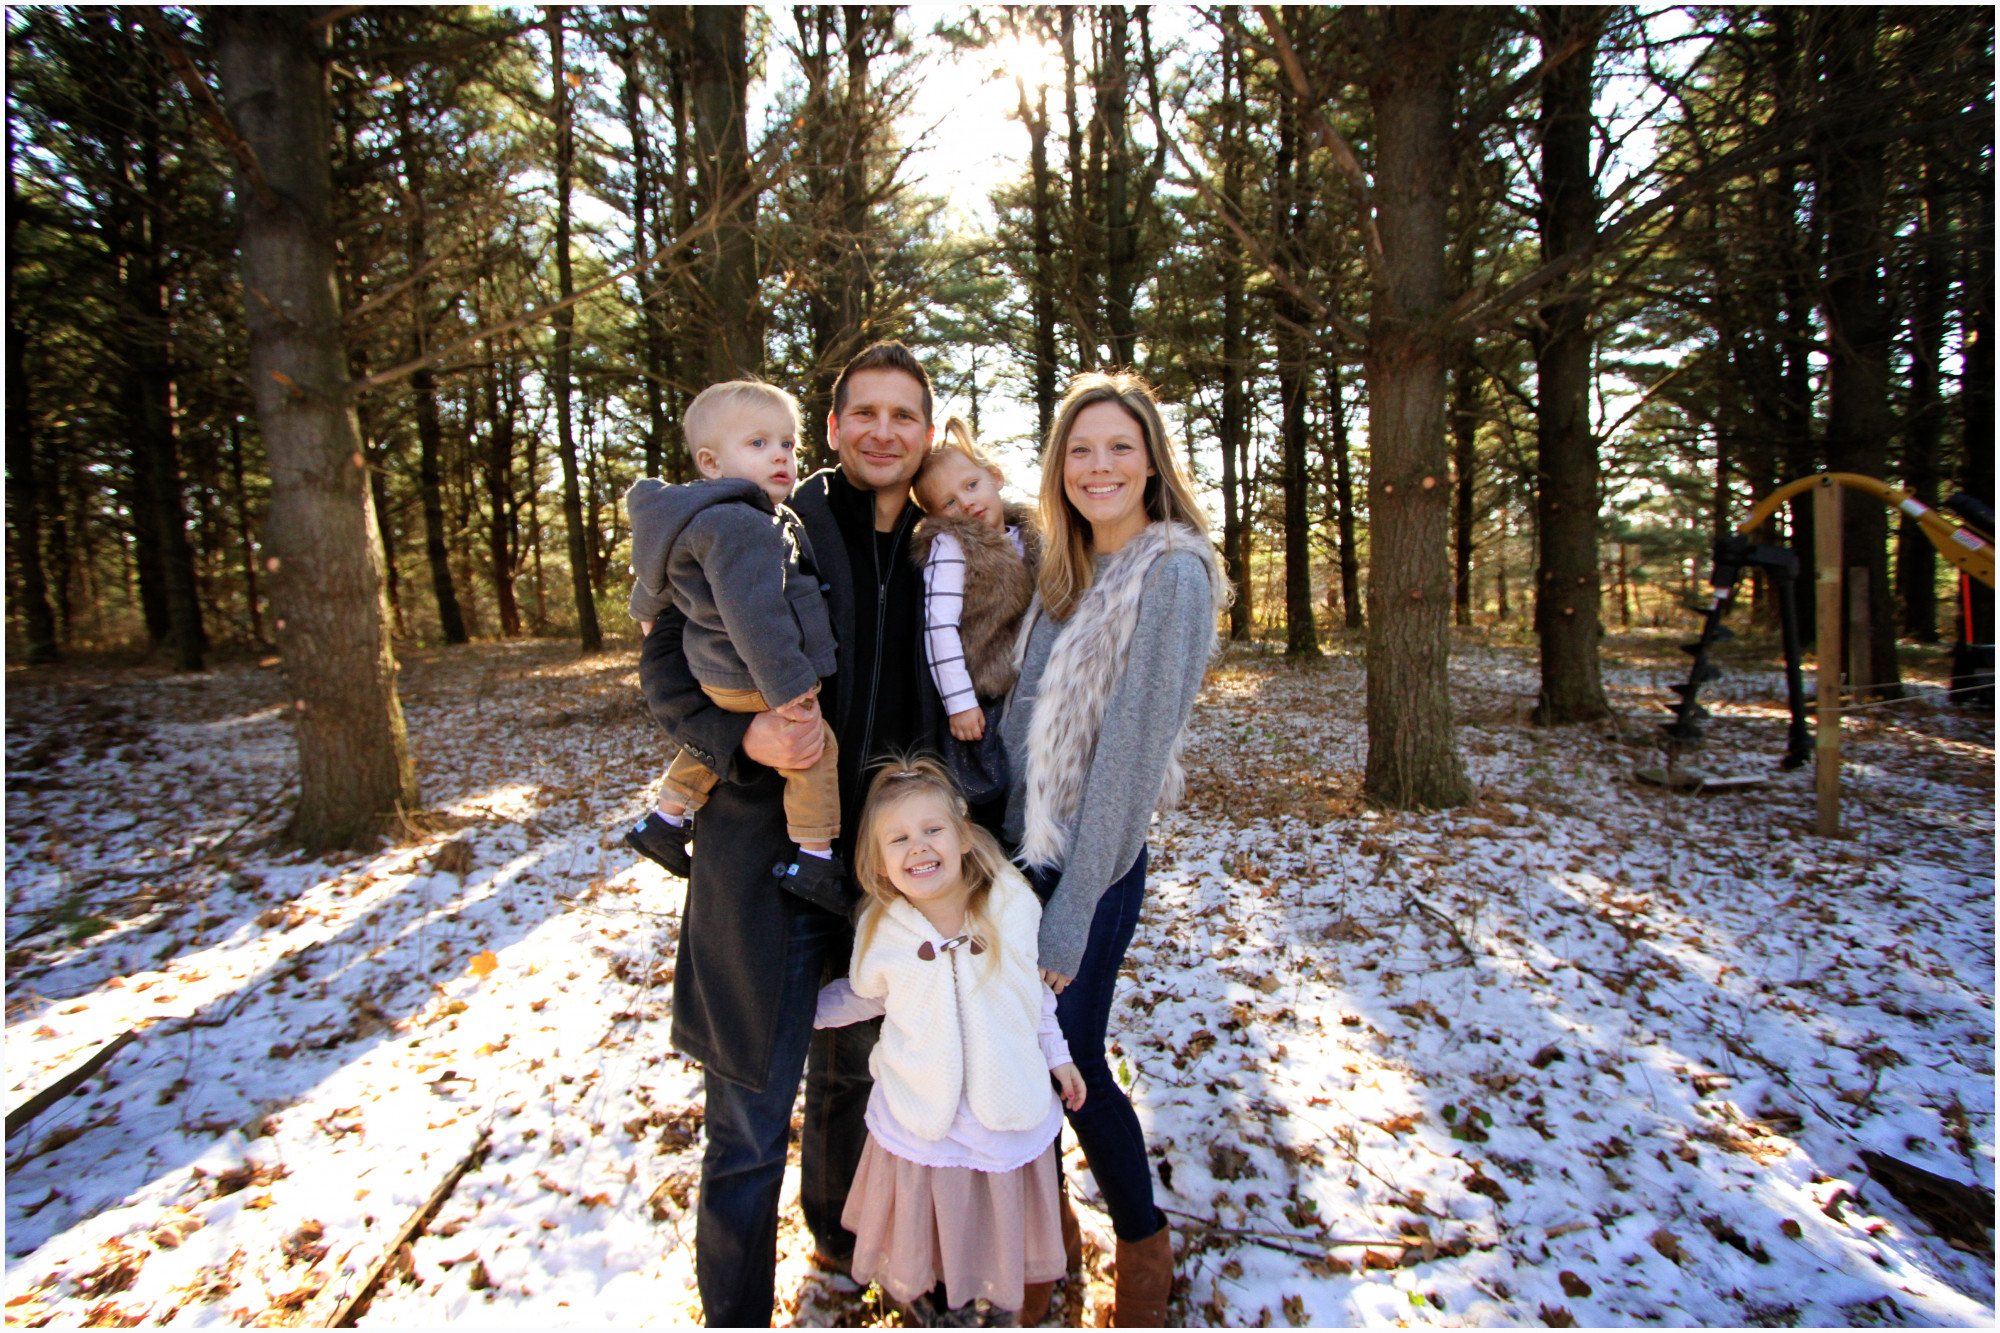 family photo in the woods with snow on ground